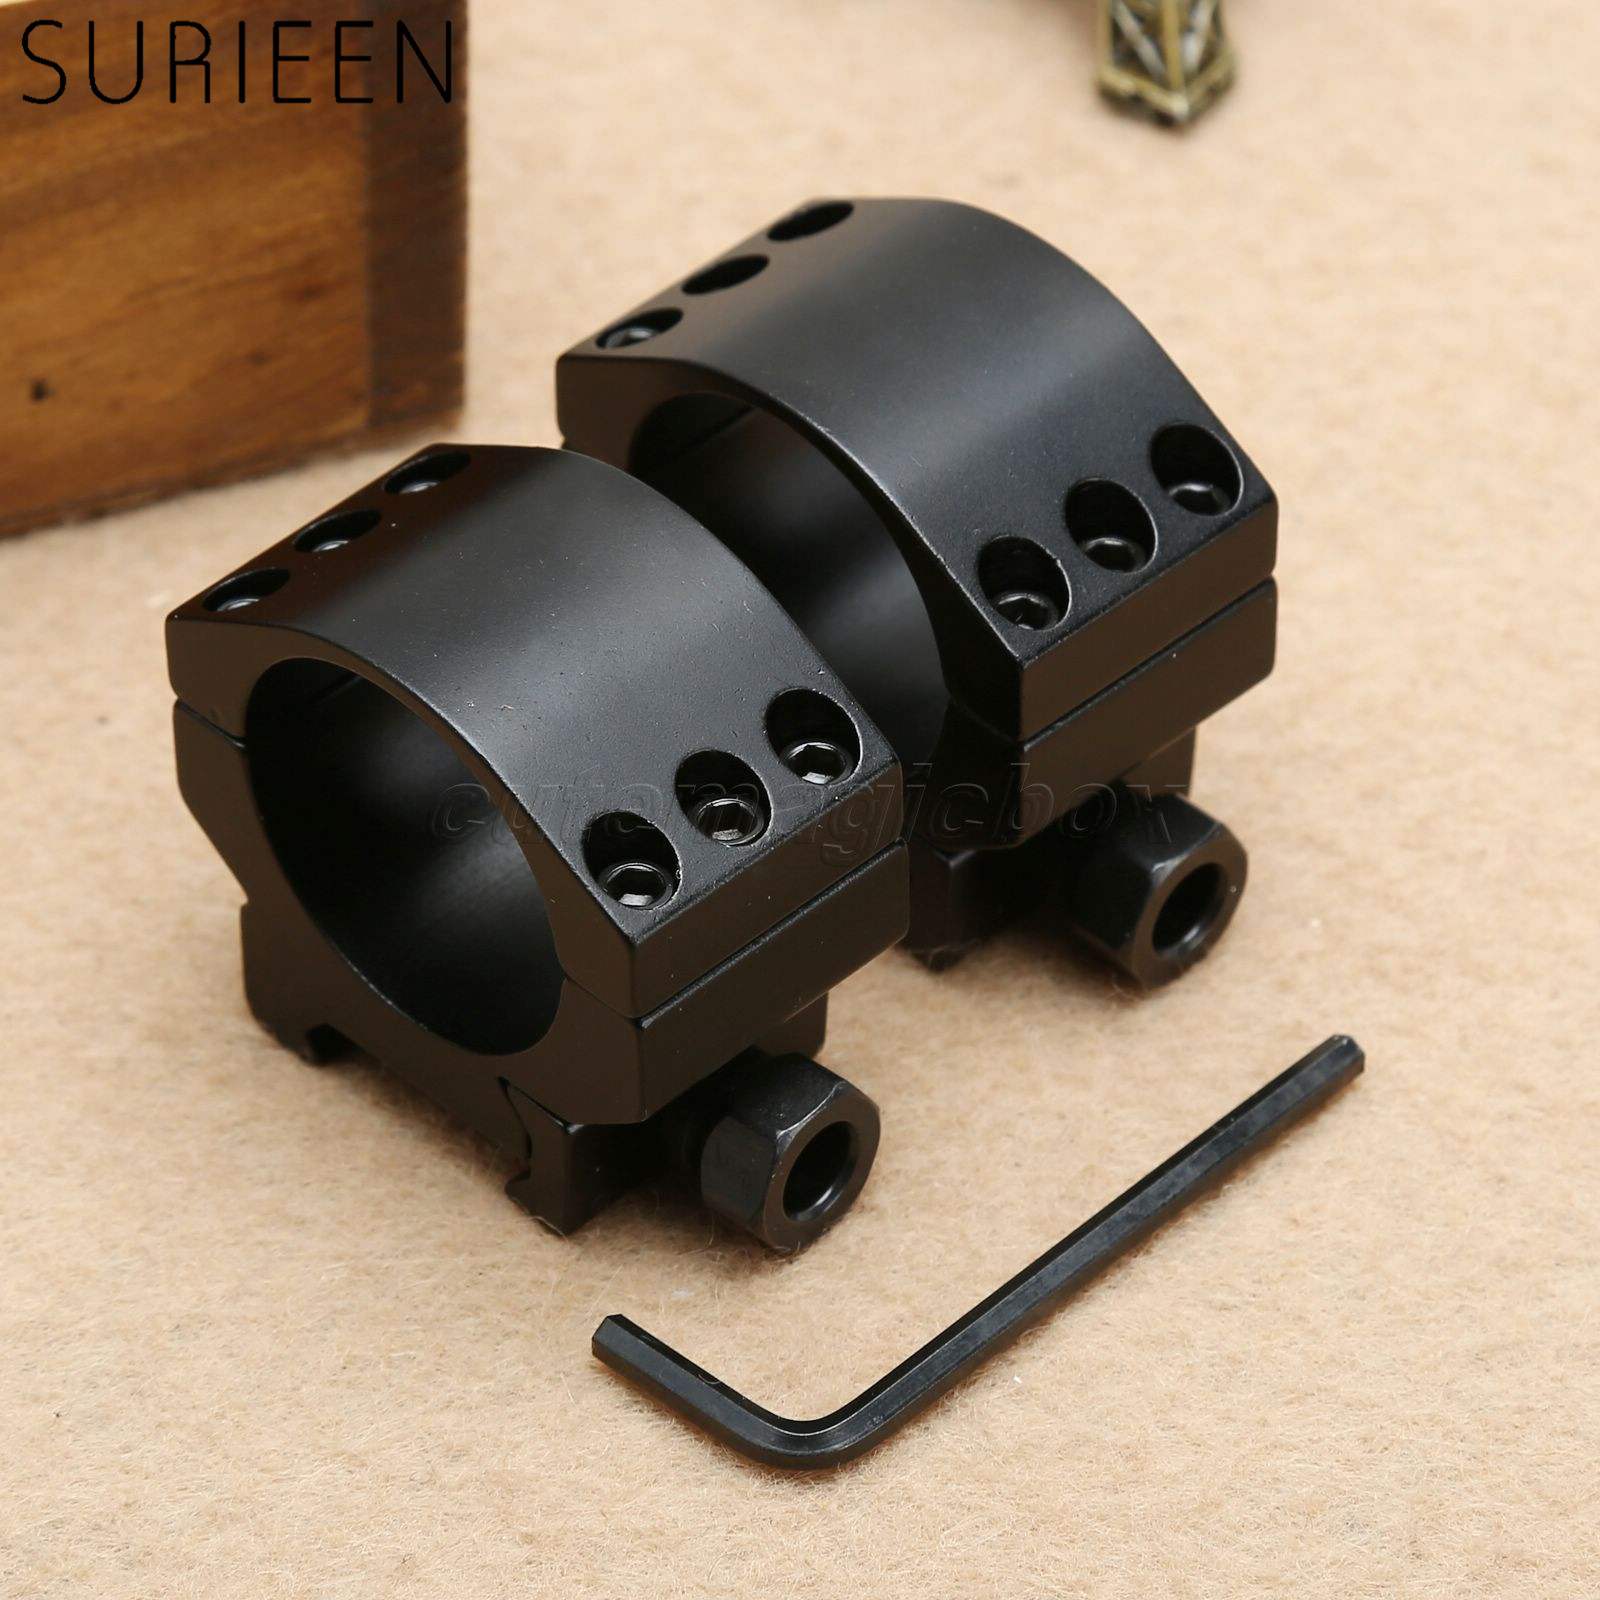 2 PCS Steel Sling Mount Buckle Plate Adapter Hook For 21mm Picatinny Rail Rifles